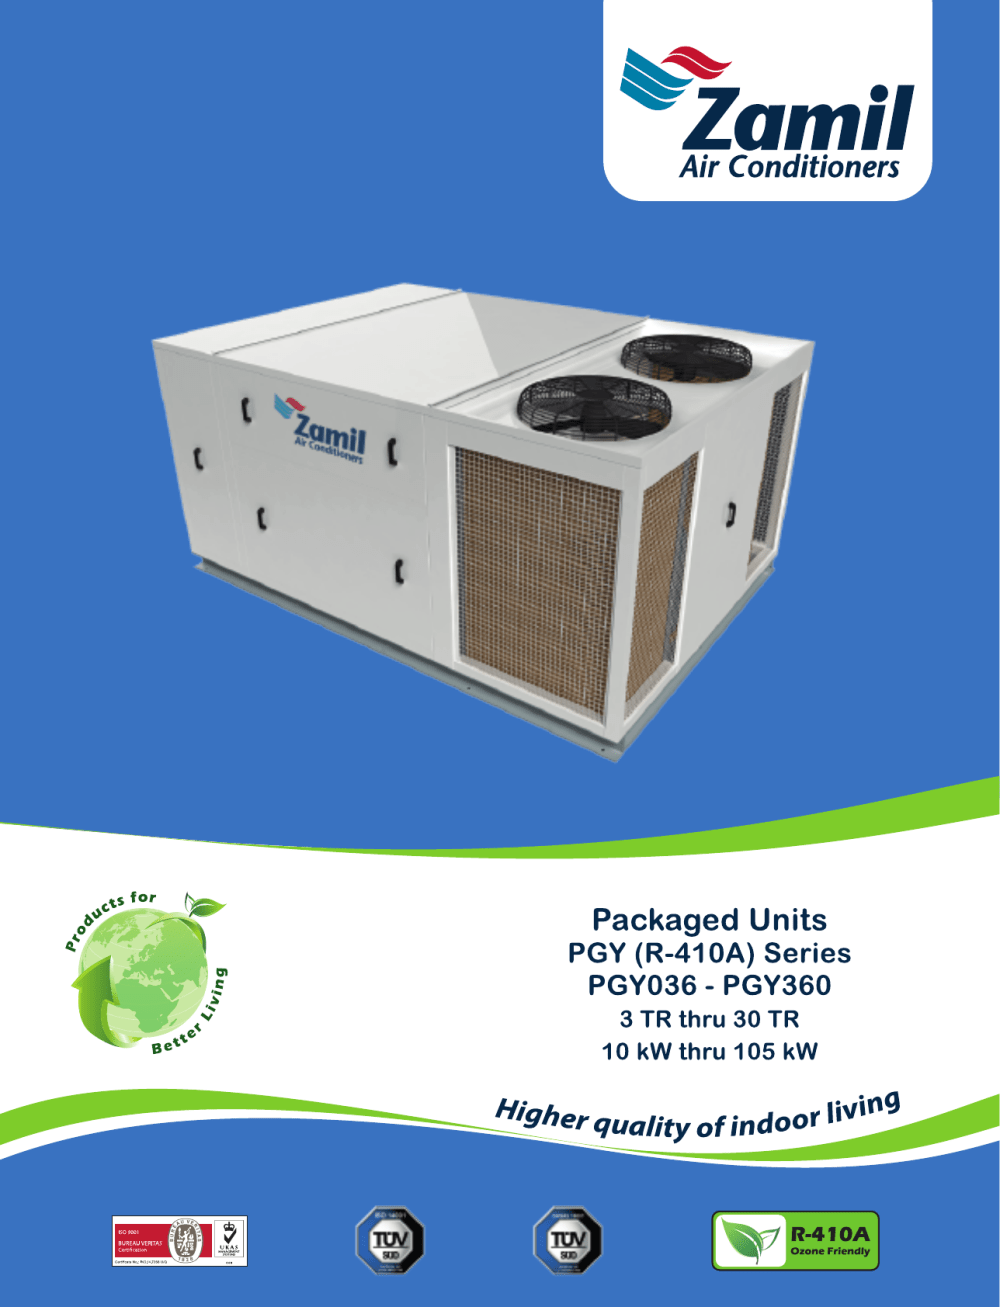 medium resolution of pgy r 410a series pmd zamil air conditioners